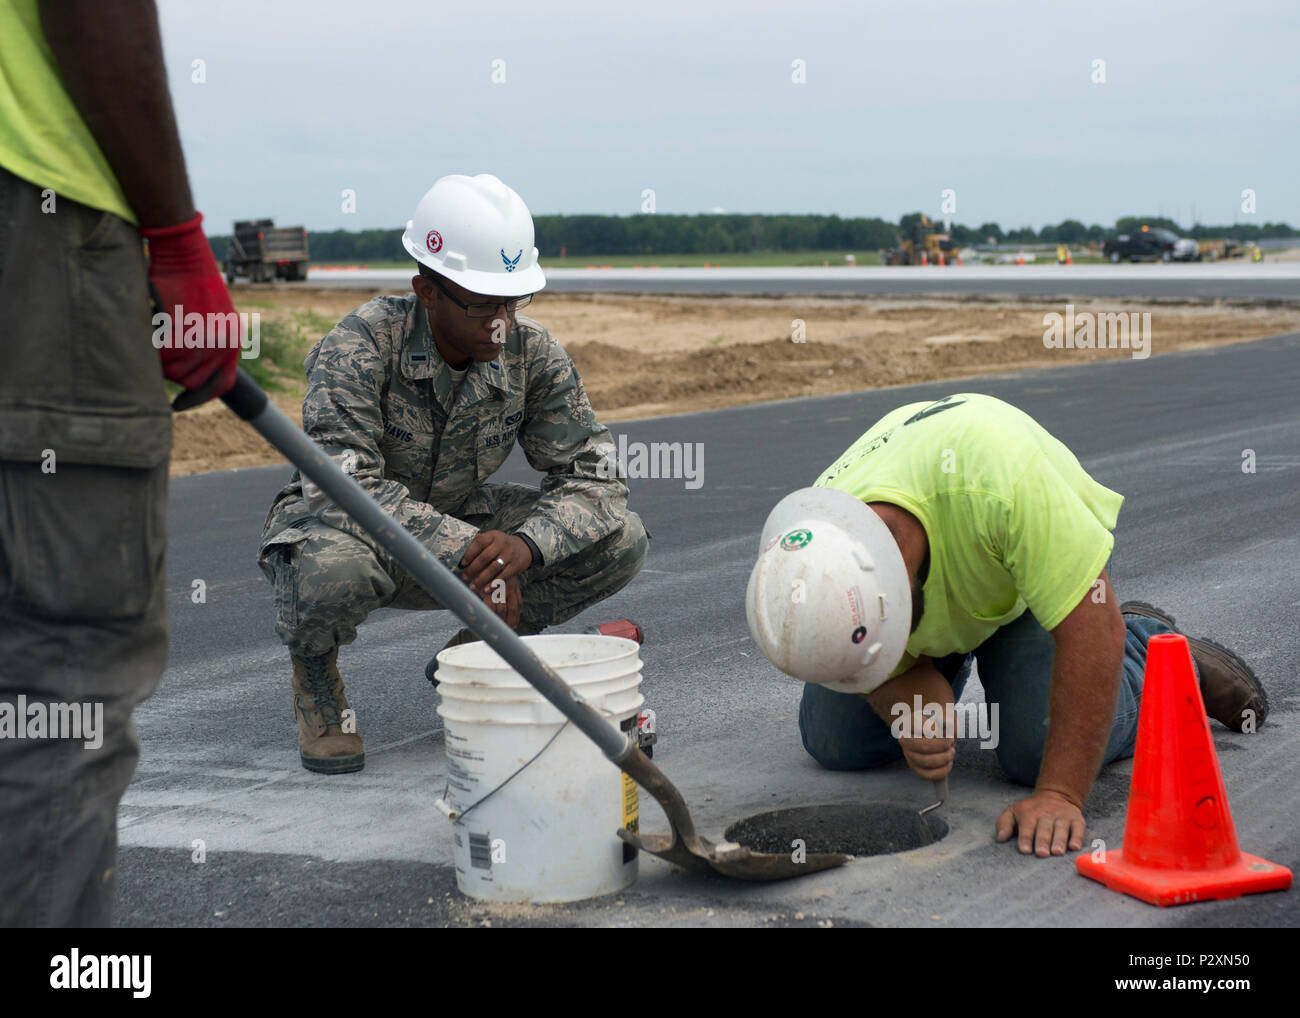 1st Lt. Prince Chavis, civil engineer officer with the 822nd Civil Engineer Flight, observes contractors working on a runway's instrument controlled landing system Aug. 8, 2016, Dover Air Force Base, Del.  Instrument controlled landing systems are often used when aircraft land in inclement weather situations. - Stock Image